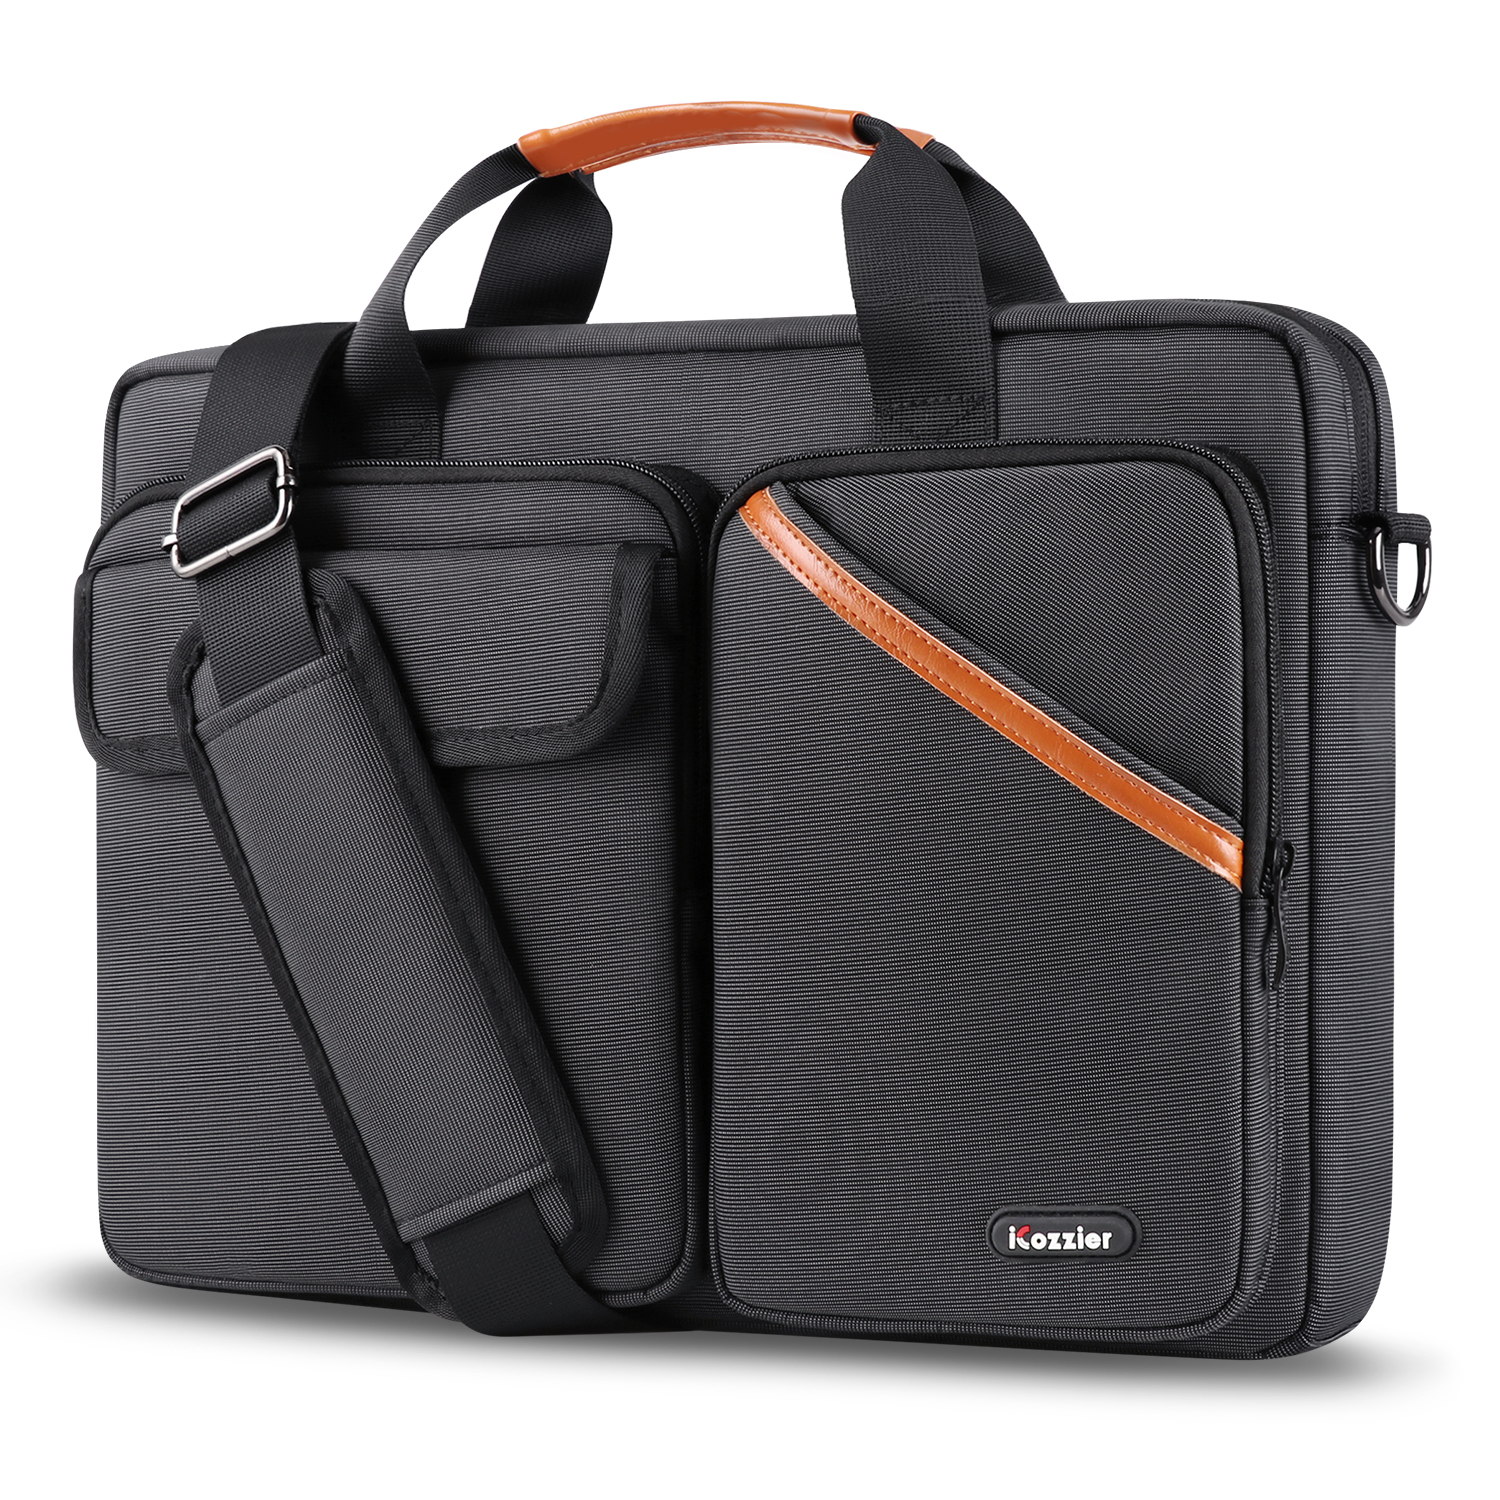 iCozzier 15.6 Inch Multi-pocket Laptop Sleeve Briefcase Large Capacity Shoulder Bag Electronic Accessories Organizer Case